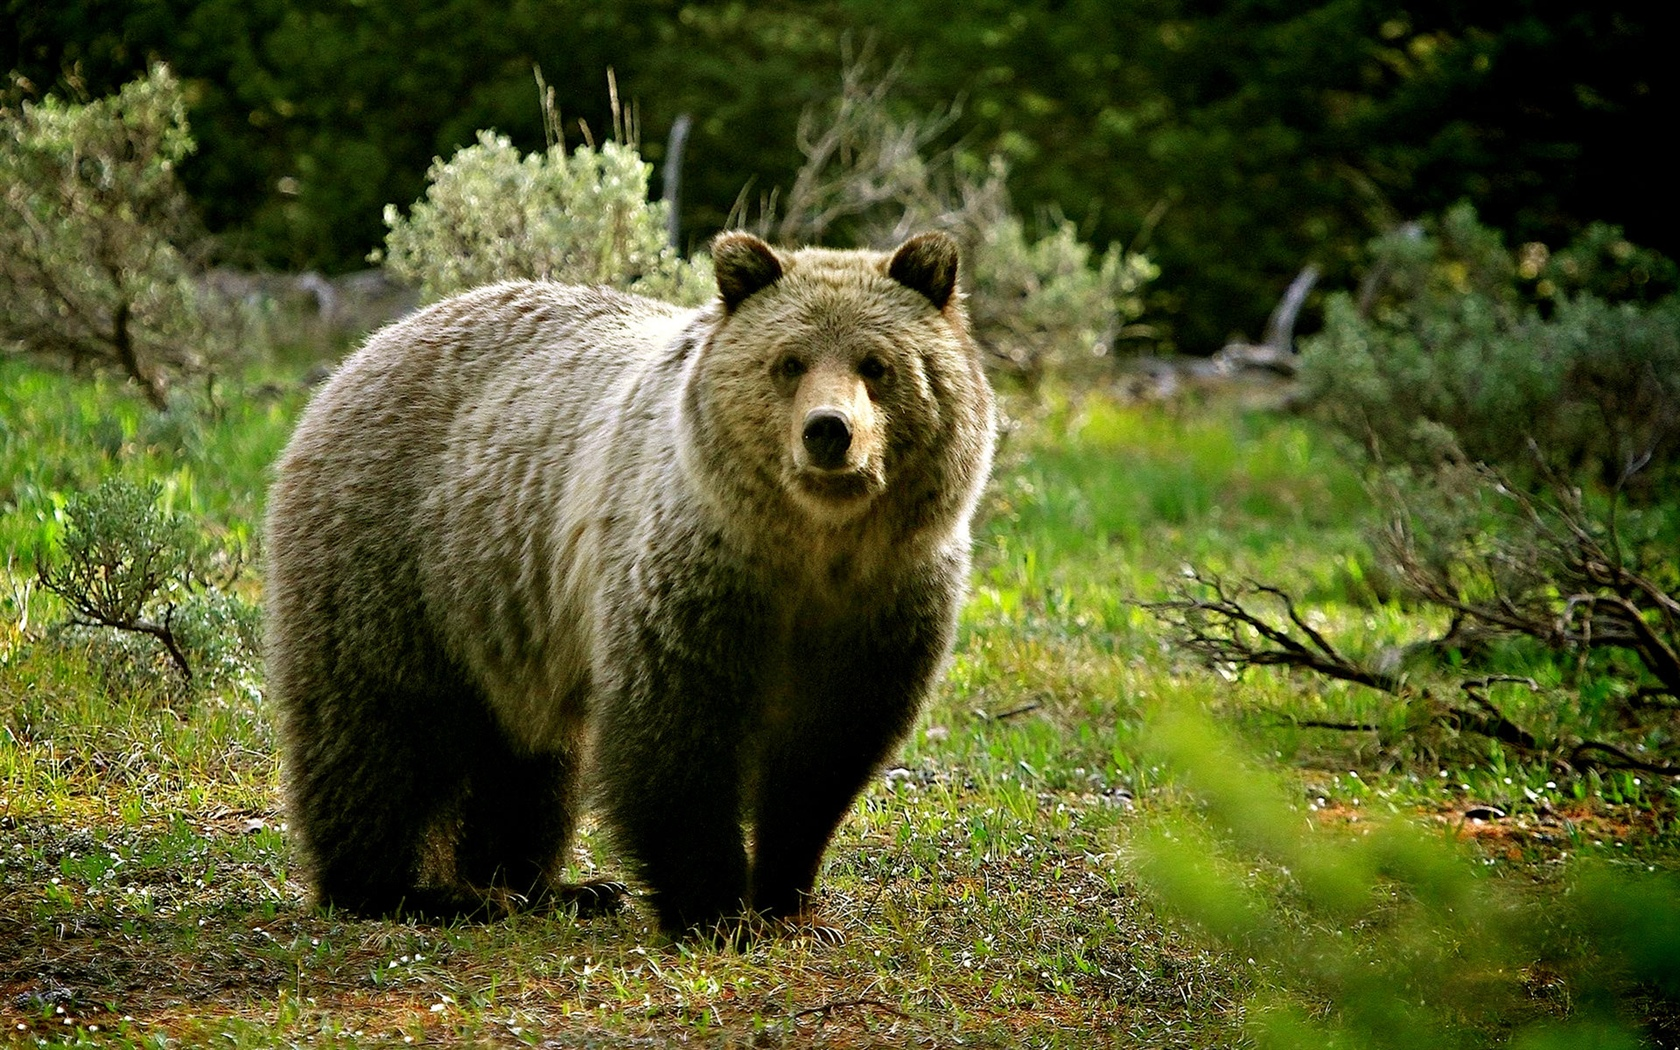 Wildlife, bear 1680x1050 wallpaper